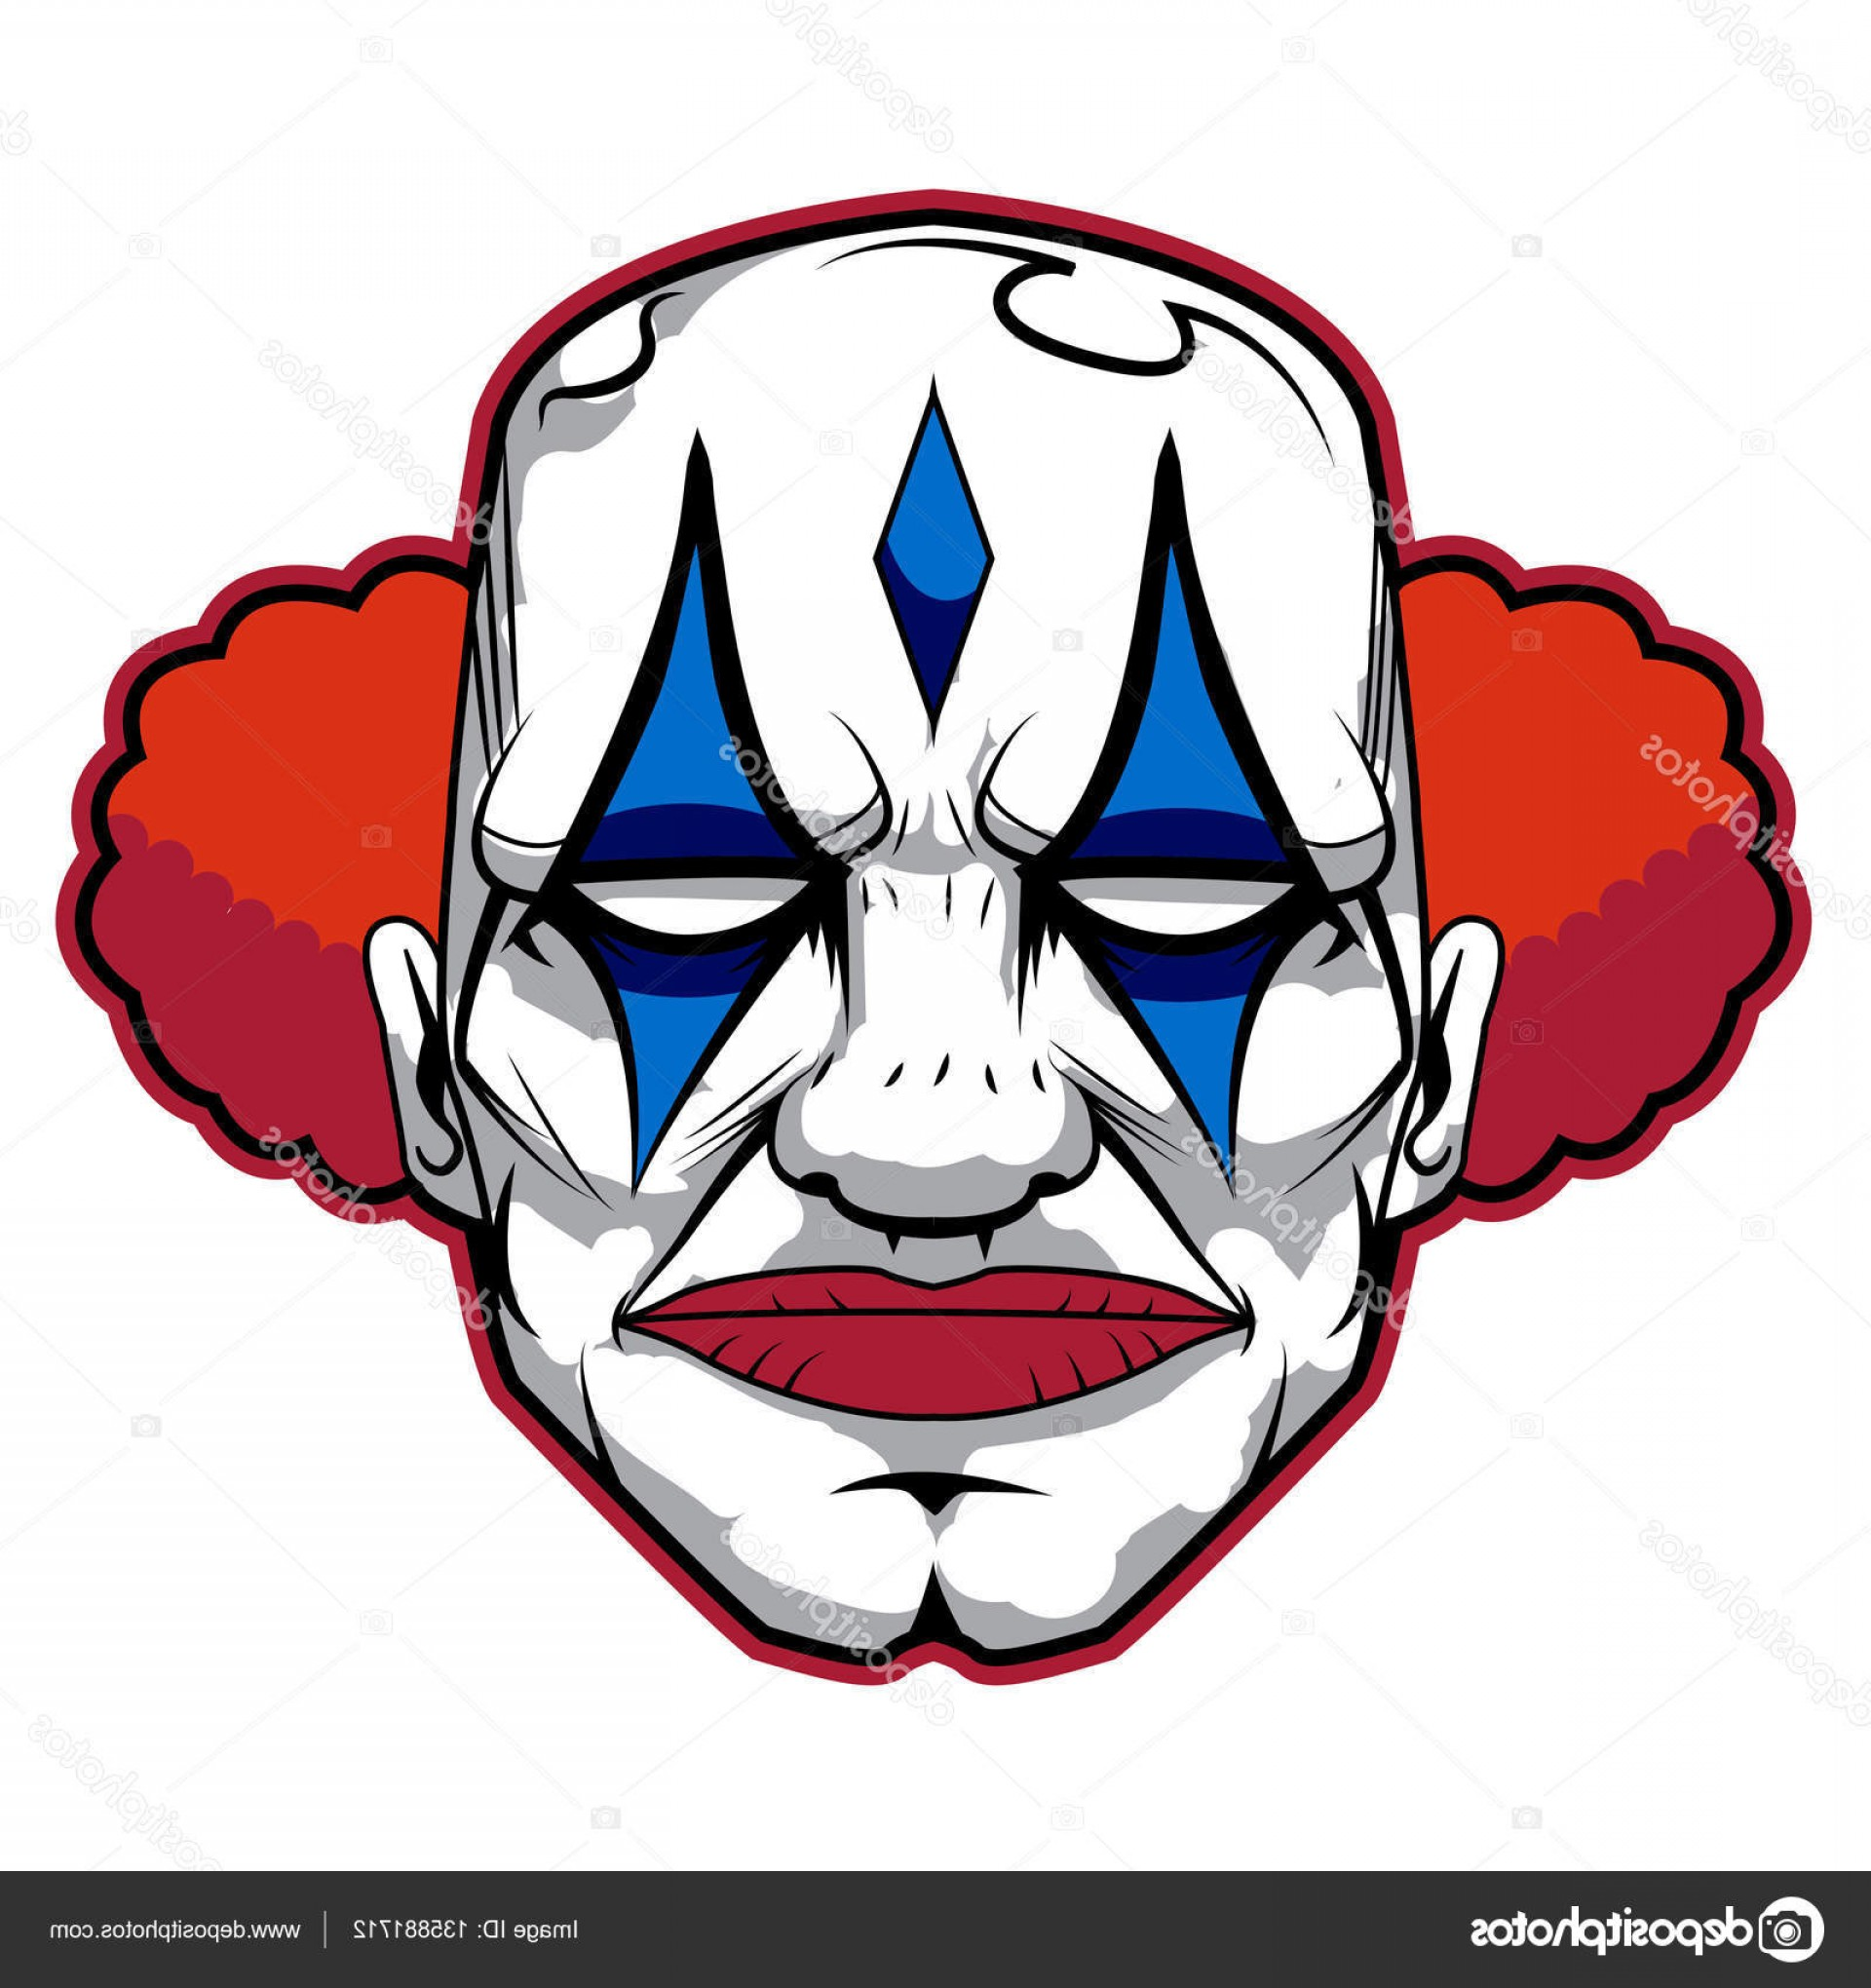 Creepy Clown Vector: Stock Illustration The Bad And Scary Clown